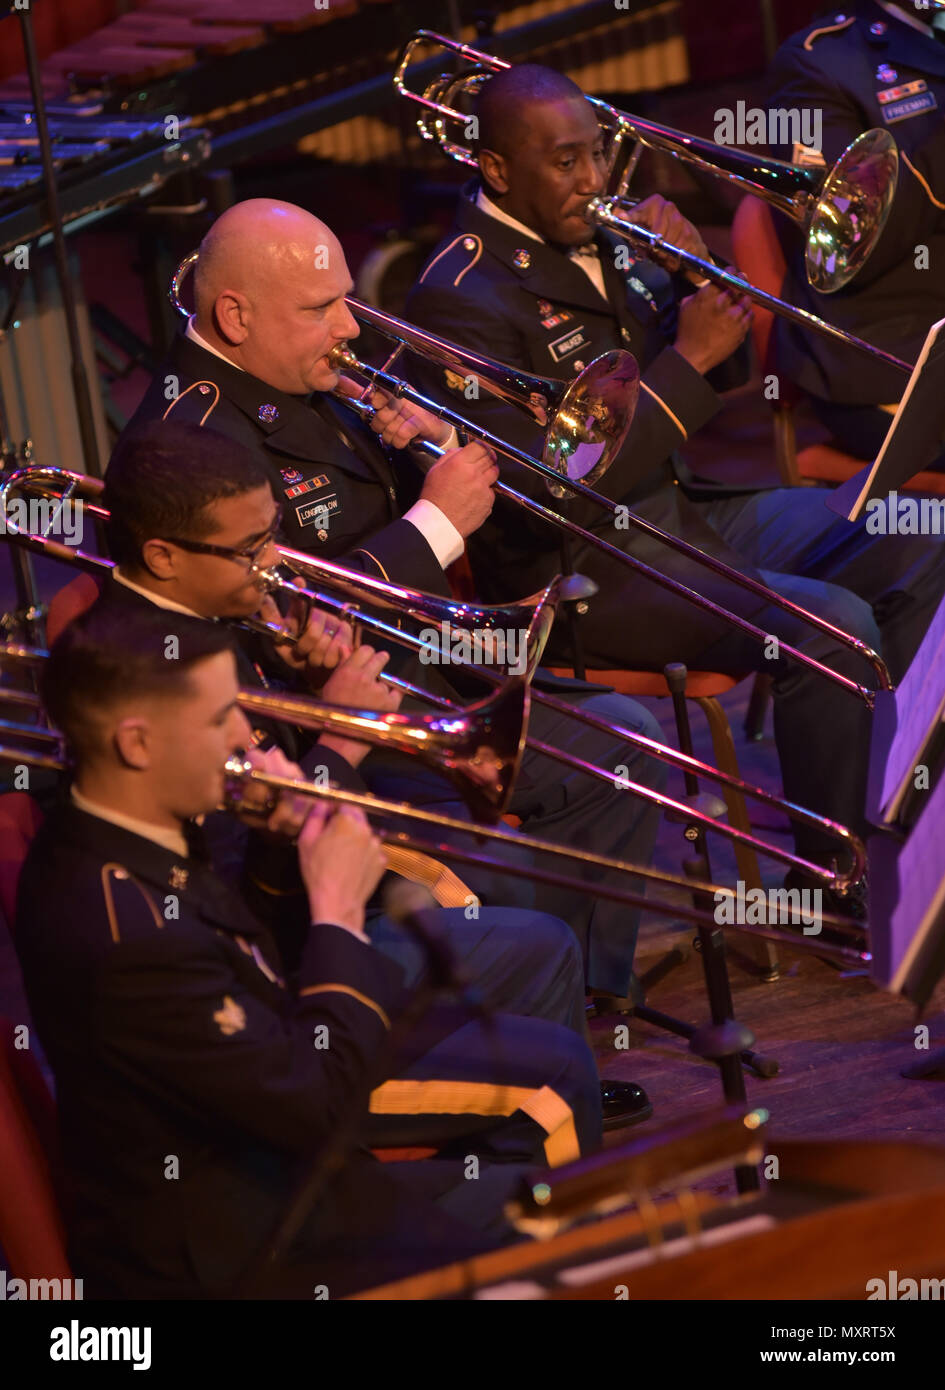 12/7/16- Spc. Samuel Dimov, Sgt. Francis Rivera-Murray, First Sgt. Charles Longfellow and Spc. Shawn Walker all play their trombone with the 287th Army Band at their annual Holiday Concert on the main stage at the Grand Opera House in Wilmington, Delaware, December 7, 2016. (U.S. Army National Guard photo by Staff Sgt. James Pernol/Released) - Stock Image